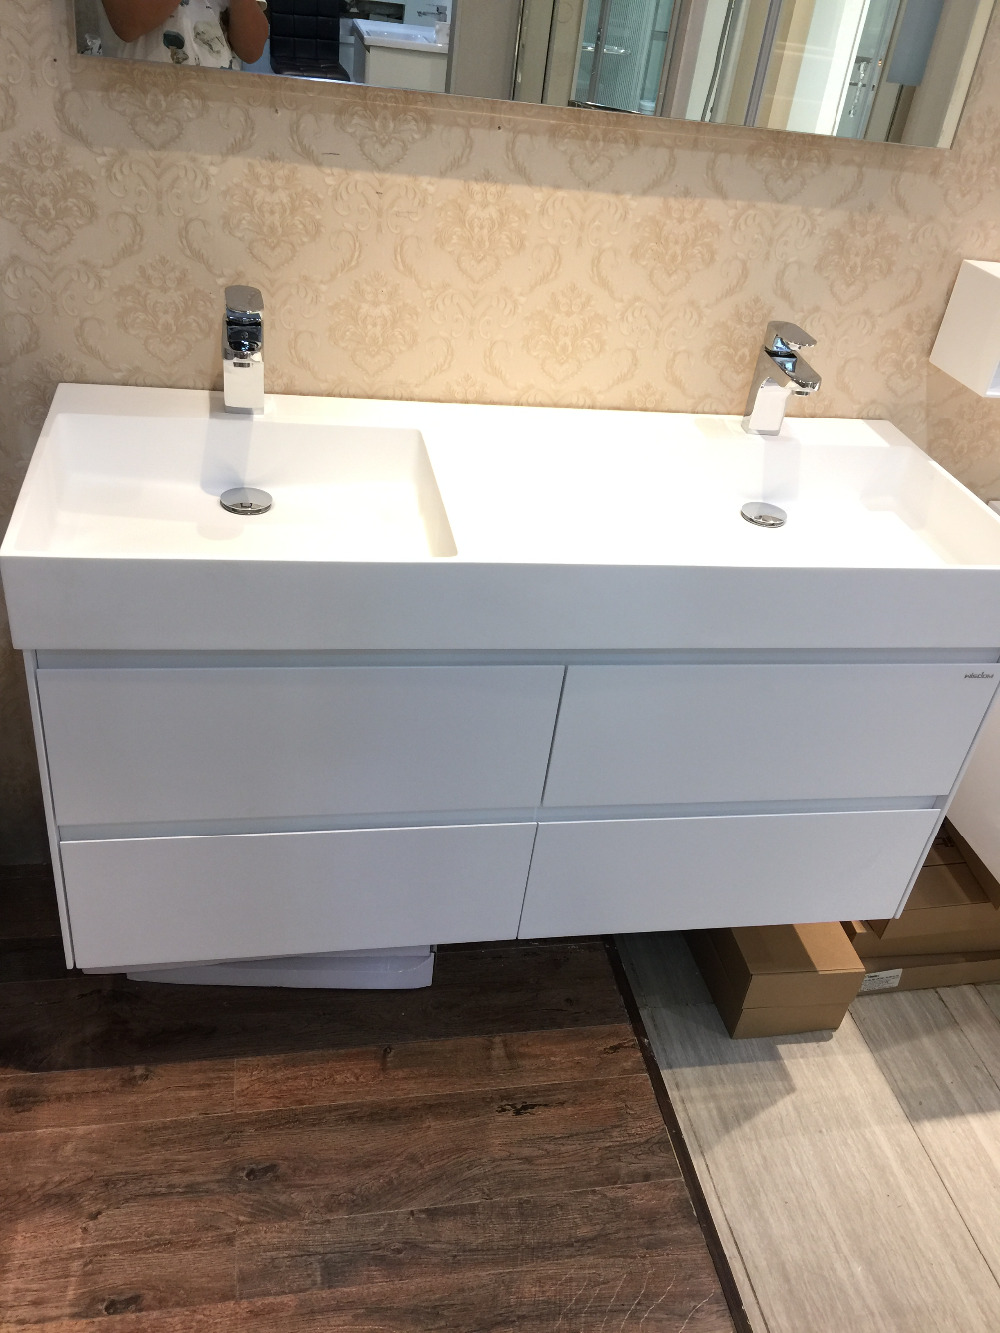 Bathroom Sinks Double Basin popular double bathroom sinks-buy cheap double bathroom sinks lots